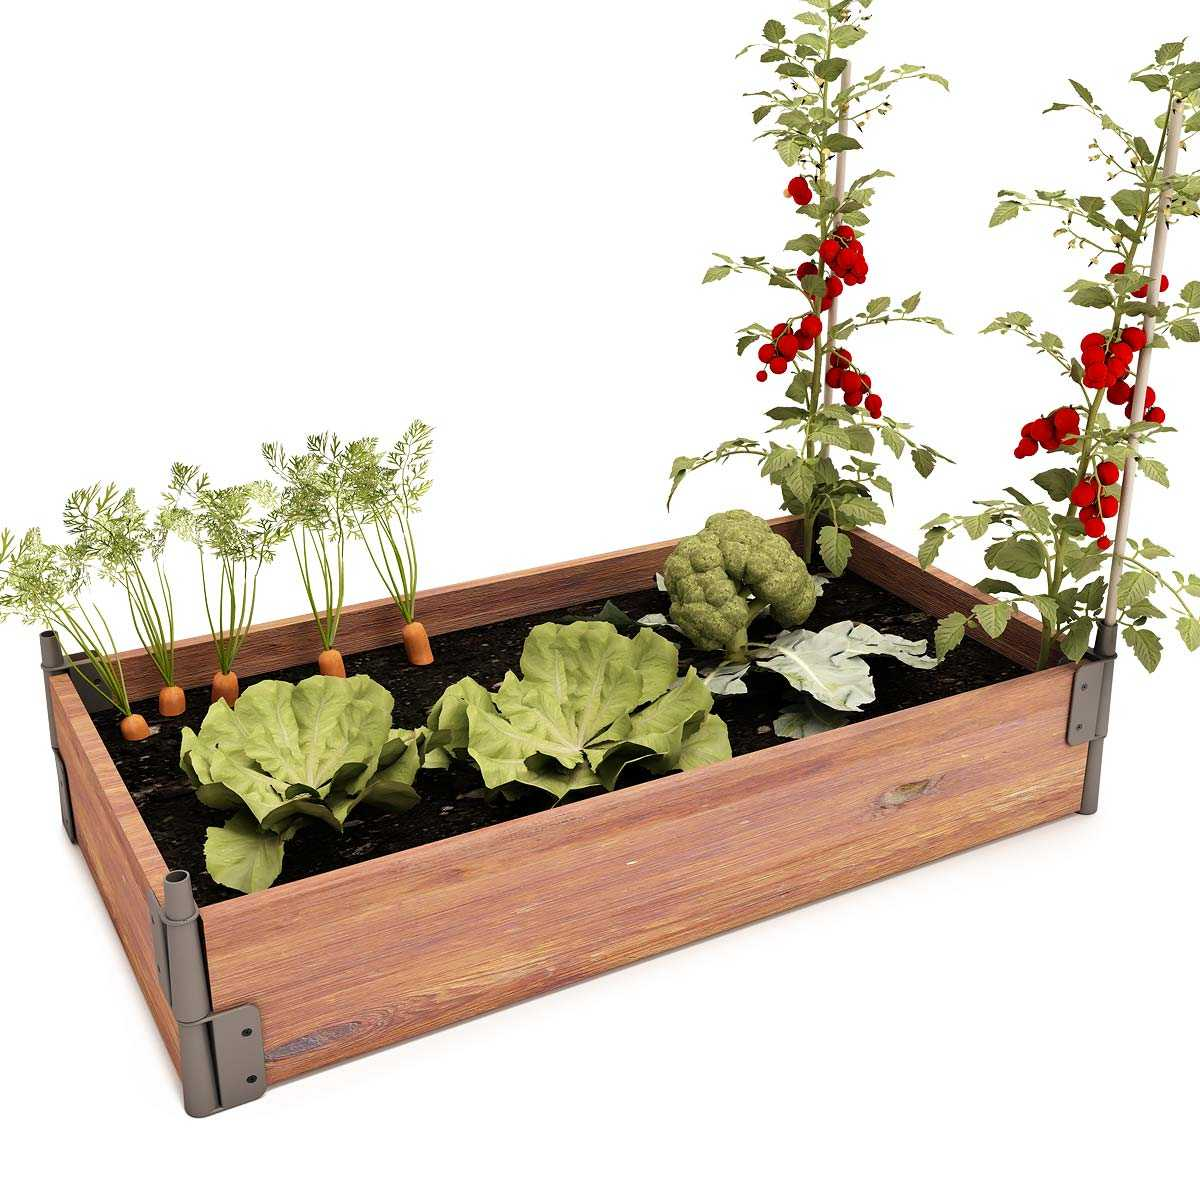 Faire Un Potager Sur Une Terrasse potager bois rectangle en pin, made in france